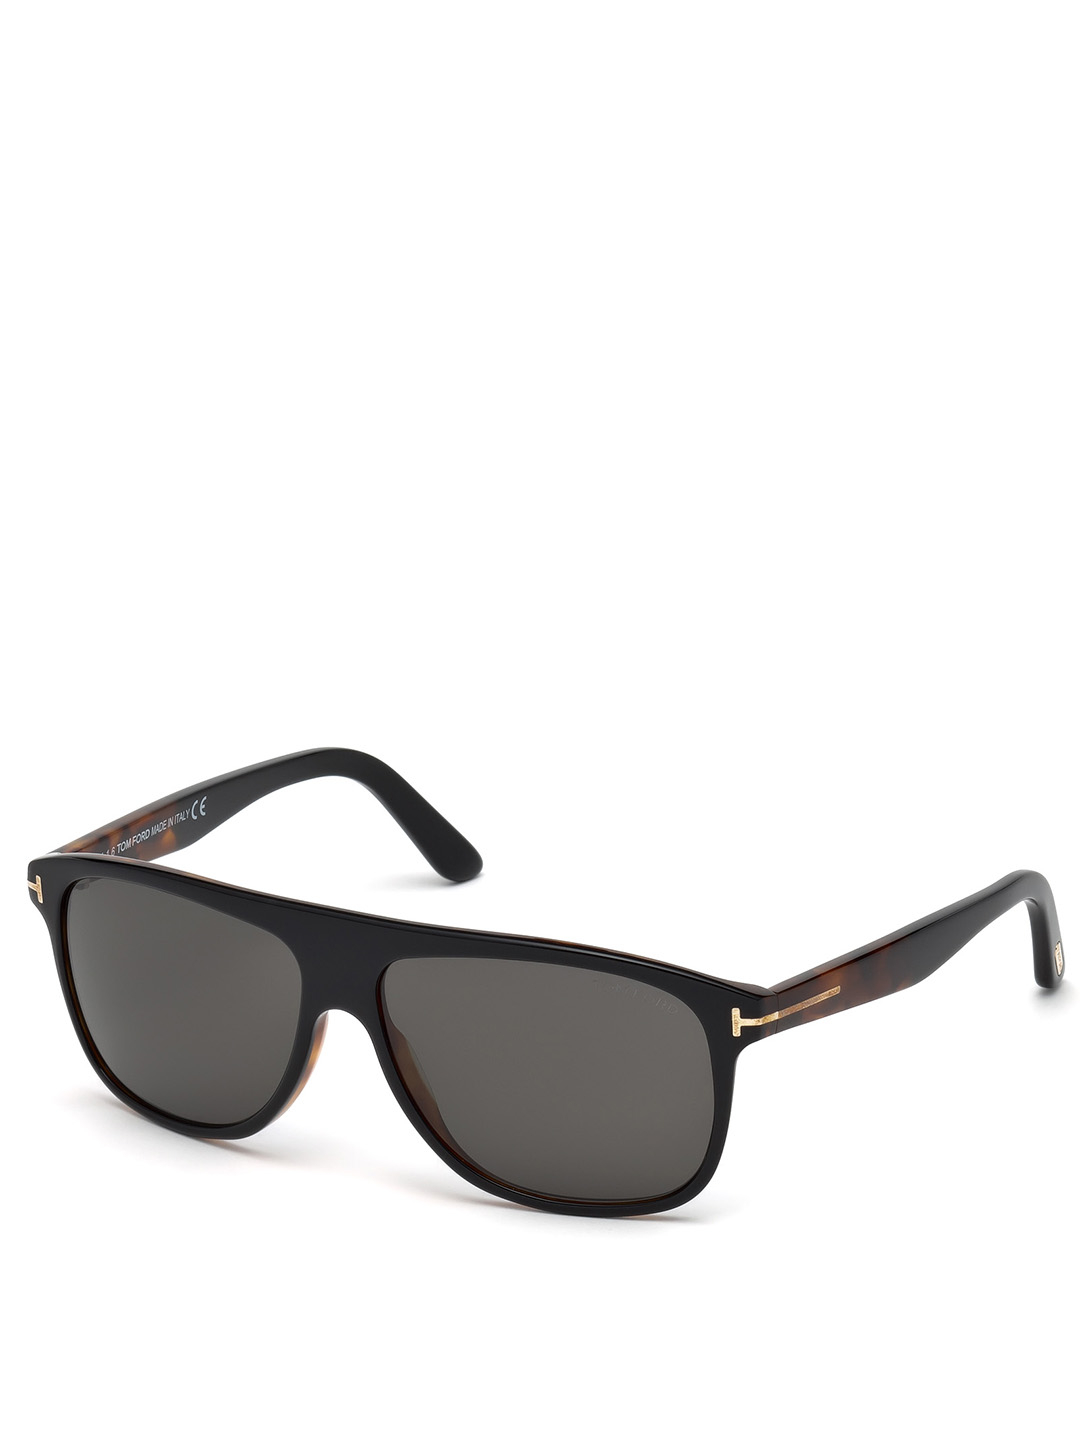 TOM FORD Inigo Rectangular Sunglasses Men's Black